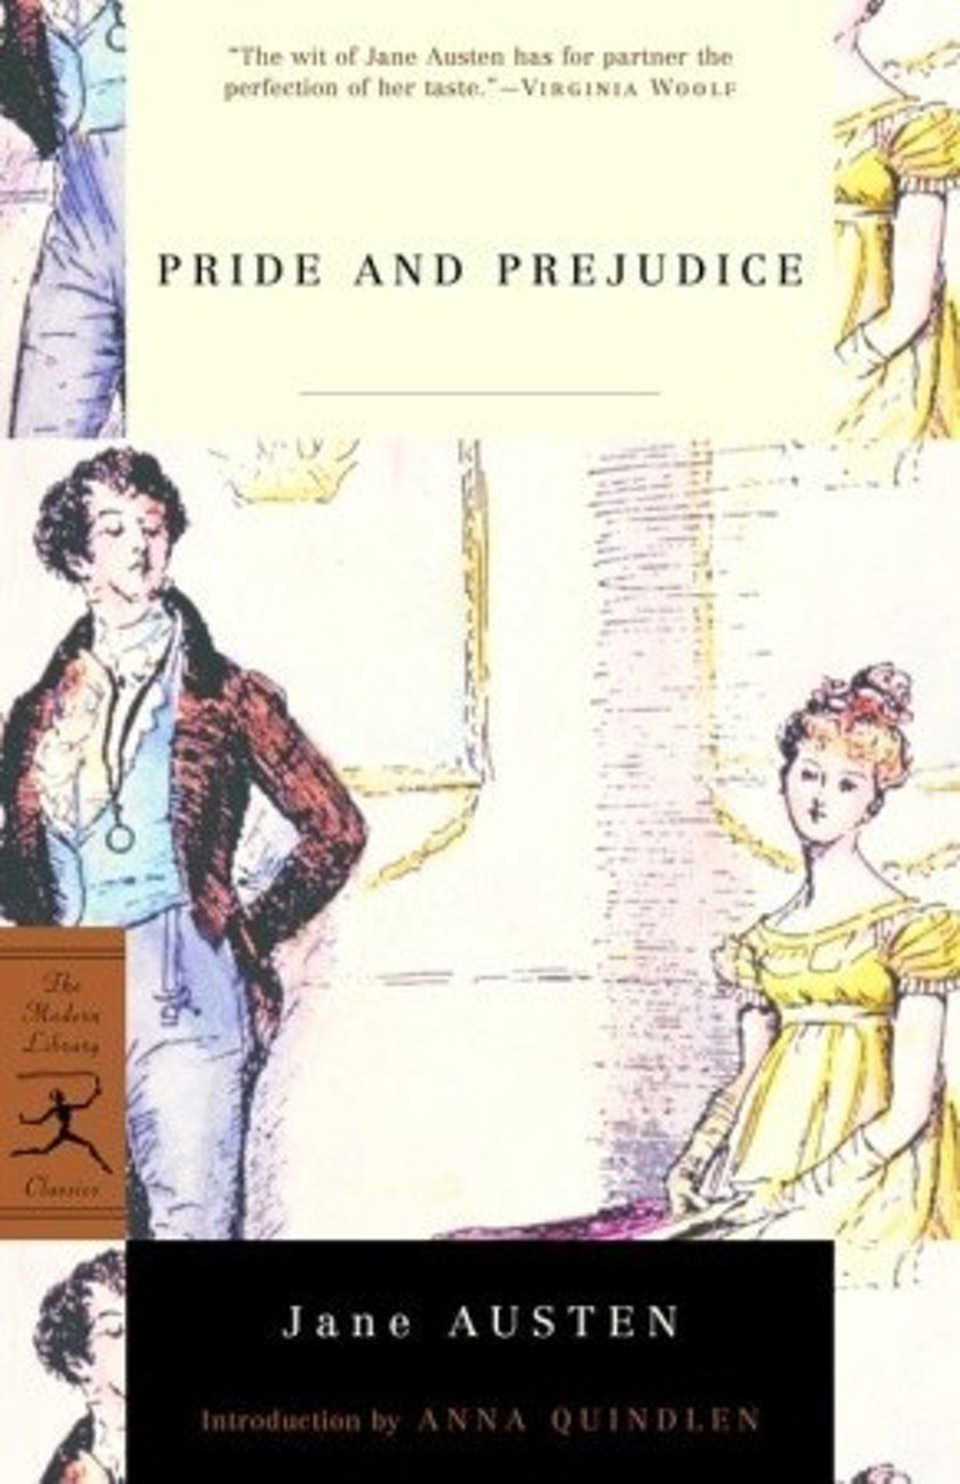 an analysis of the good parents and good children in pride and prejudice by jane austen and frankens Pride and prejudice chapter 1: summary & analysis possession of a good in the opening of pride and prejudice, jane austen prepares the reader for the.